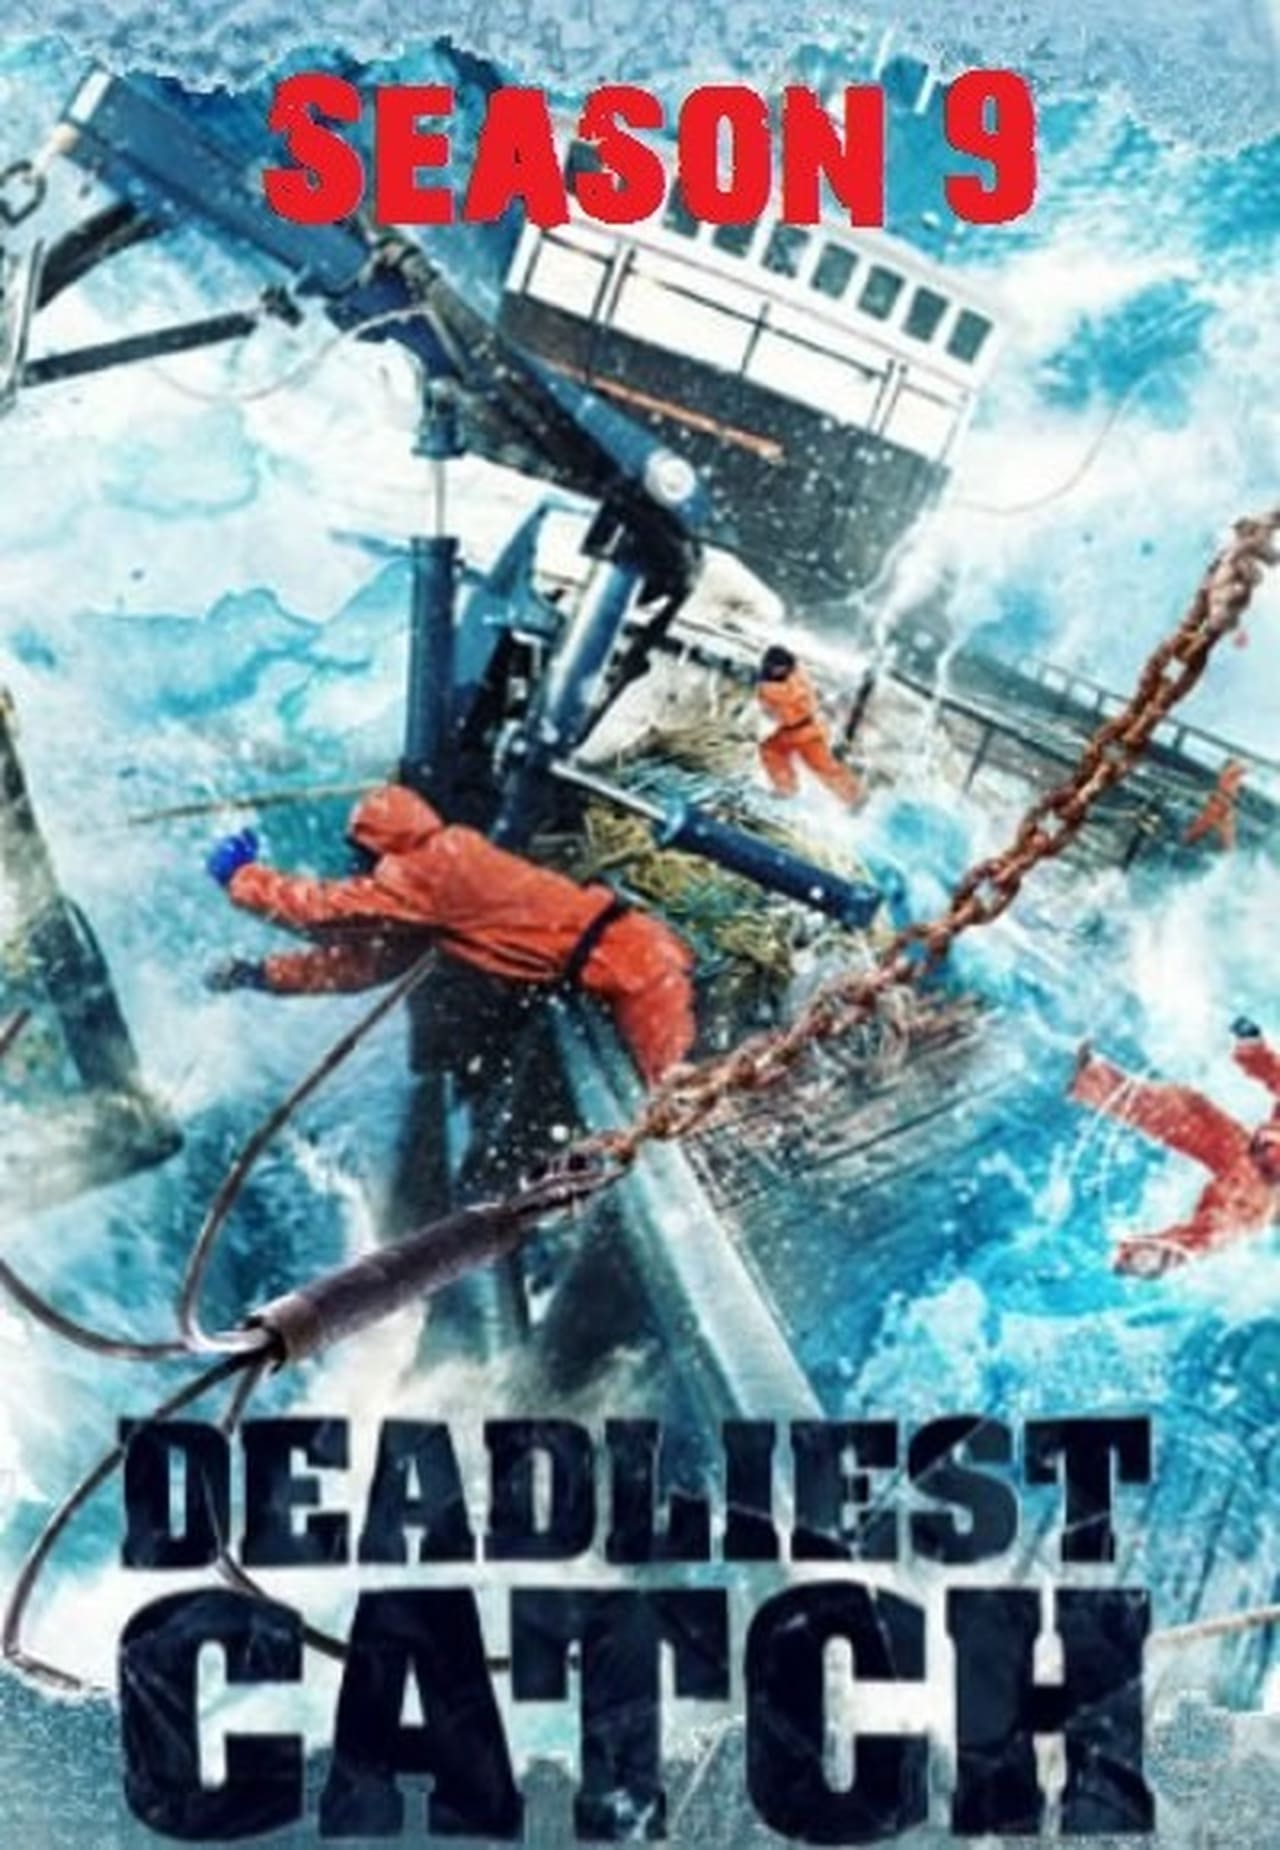 Watch Deadliest Catch Season 9 Online